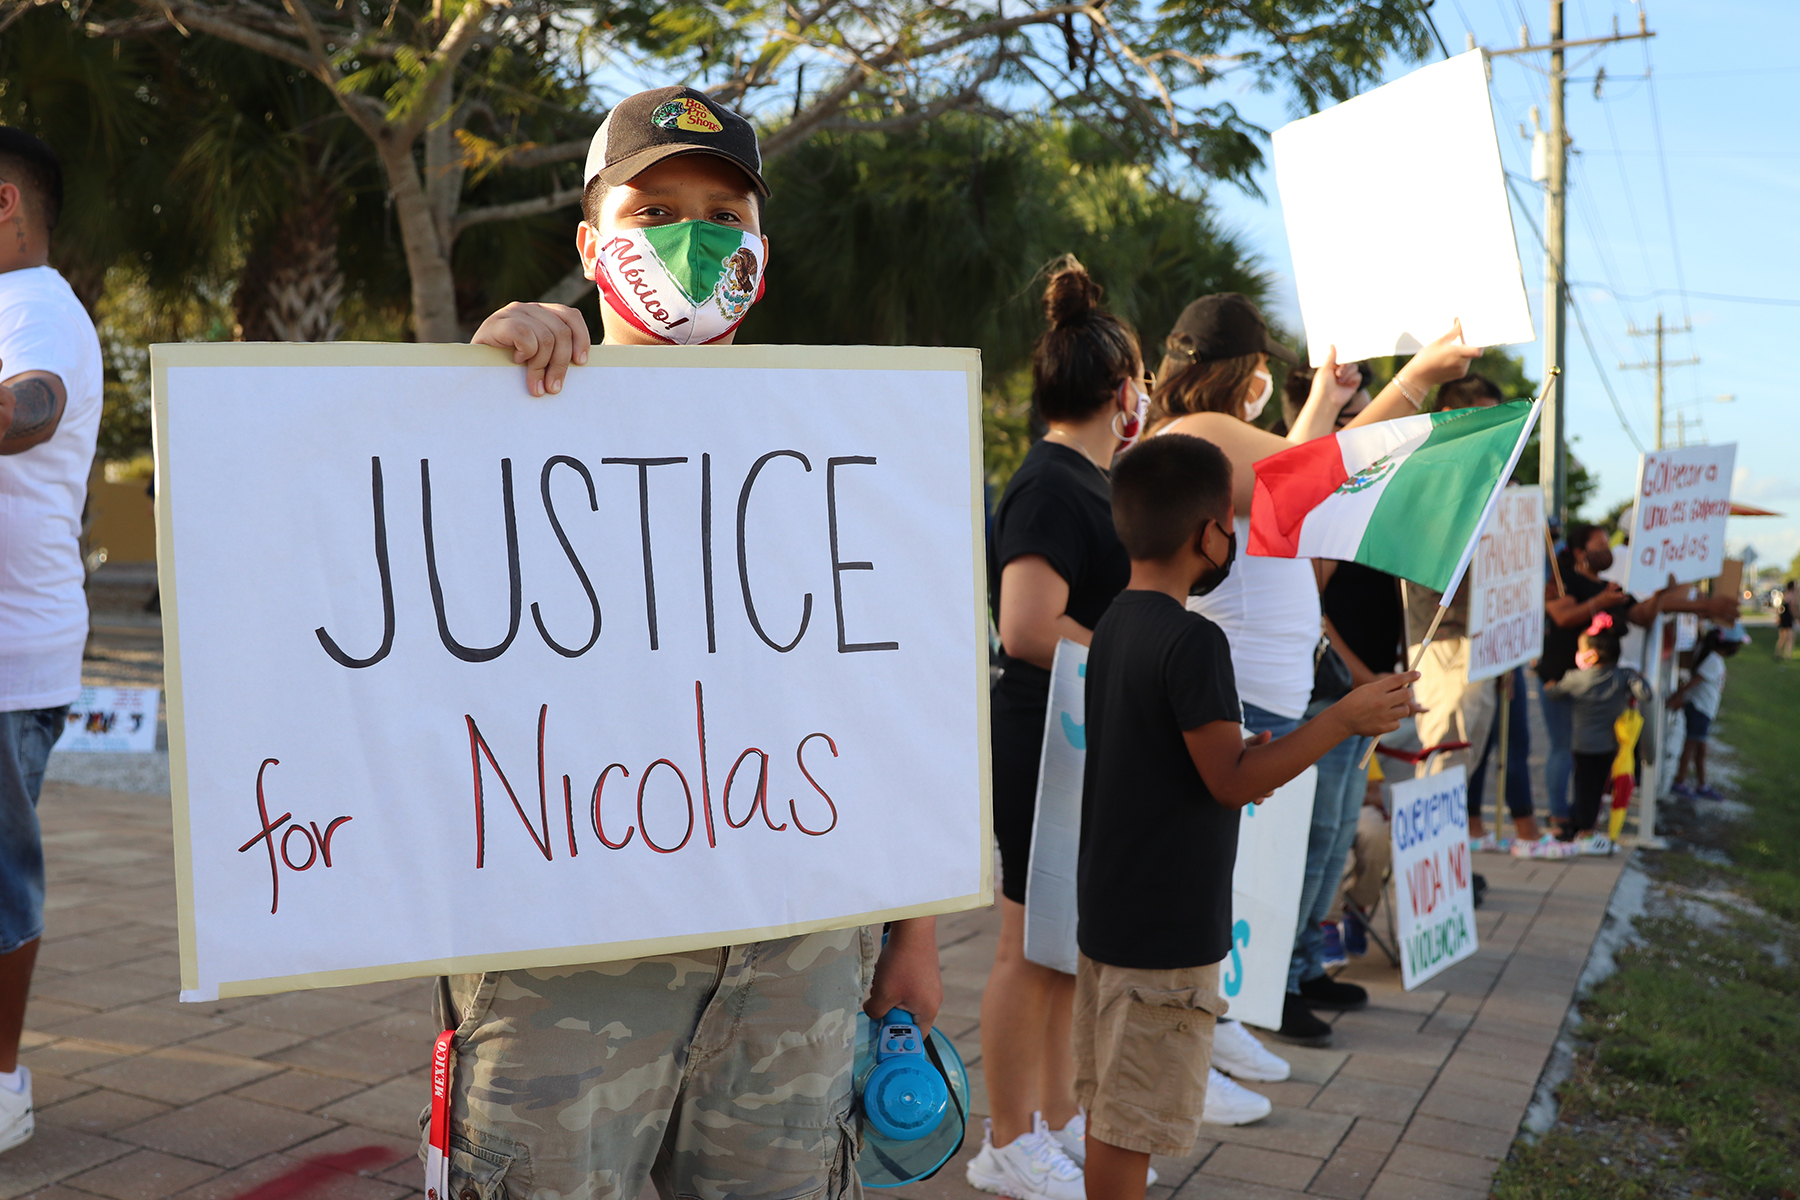 A friend of Nicolas Jr. at a vigil at the zocalo in Immokalee, Florida, February 2021.